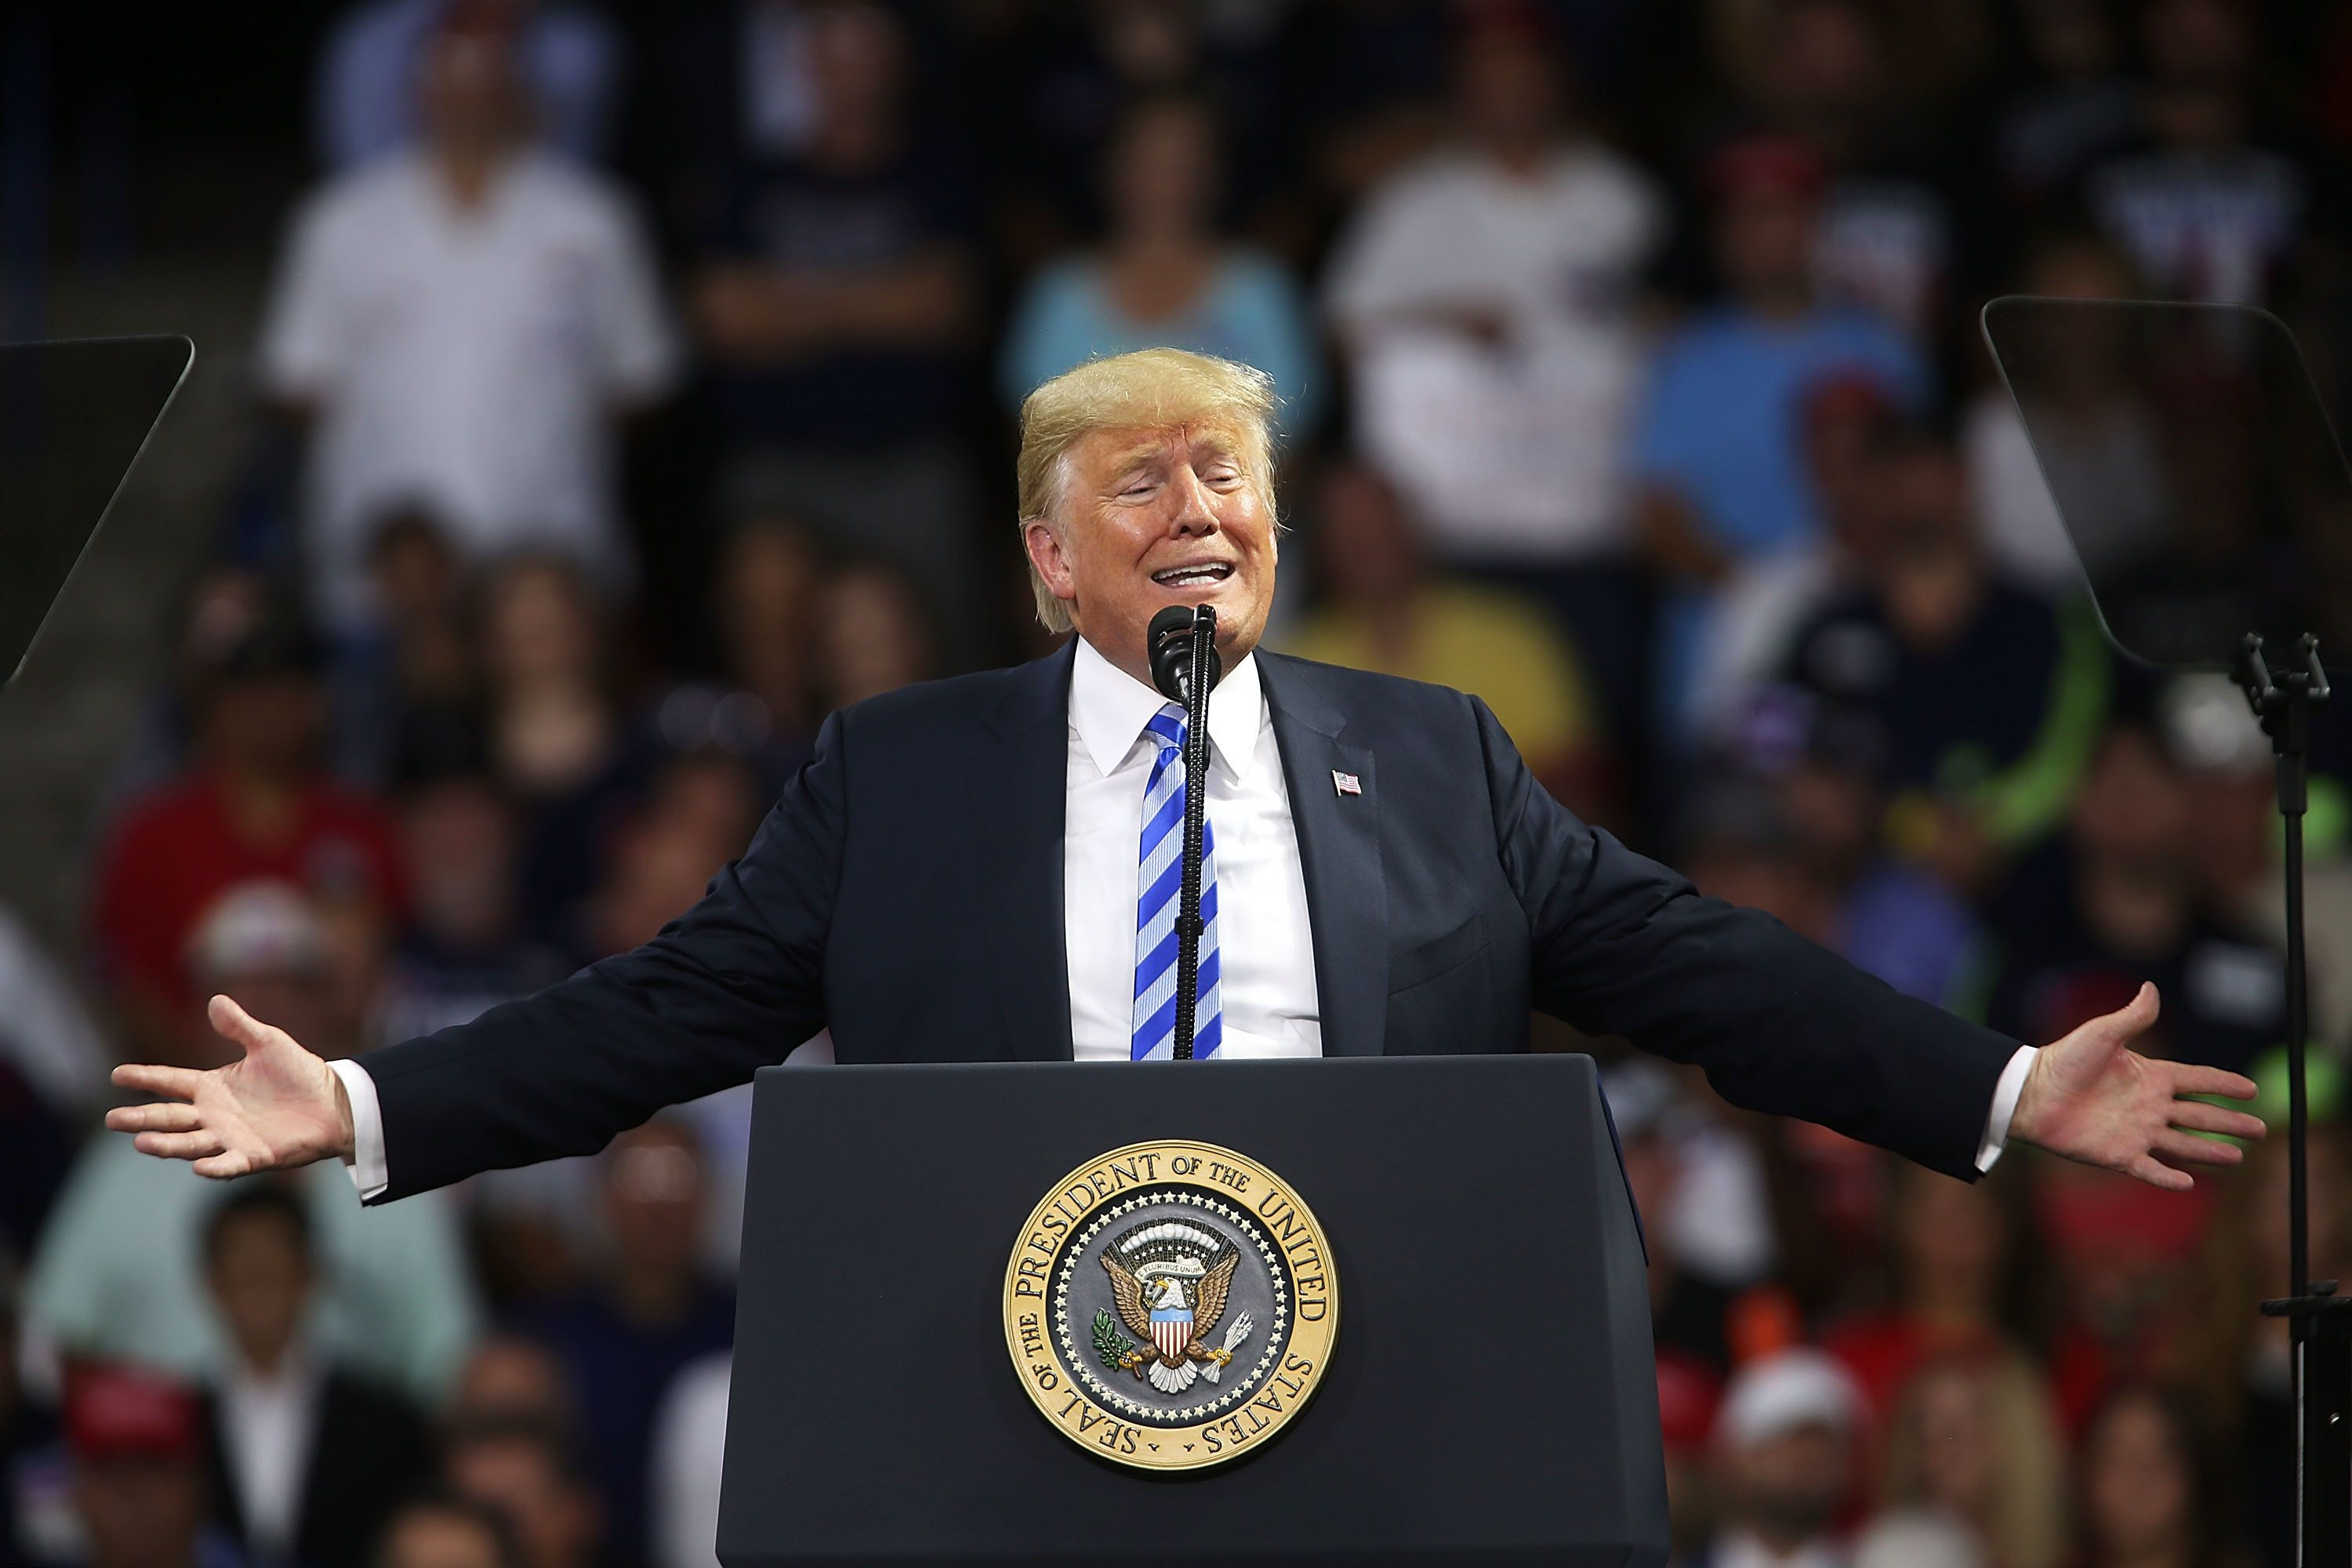 CHARLESTON, WV - AUGUST 21:  President Donald Trump speaks a rally at the Charleston Civic Center on August 21, 2018 in Charleston, West Virginia. Paul Manafort, a former campaign manager for Trump and a longtime political operative, was found guilty in a Washington court today of not paying taxes on more than $16 million in income and lying to banks where he was seeking loans.  (Photo by Spencer Platt/Getty Images)